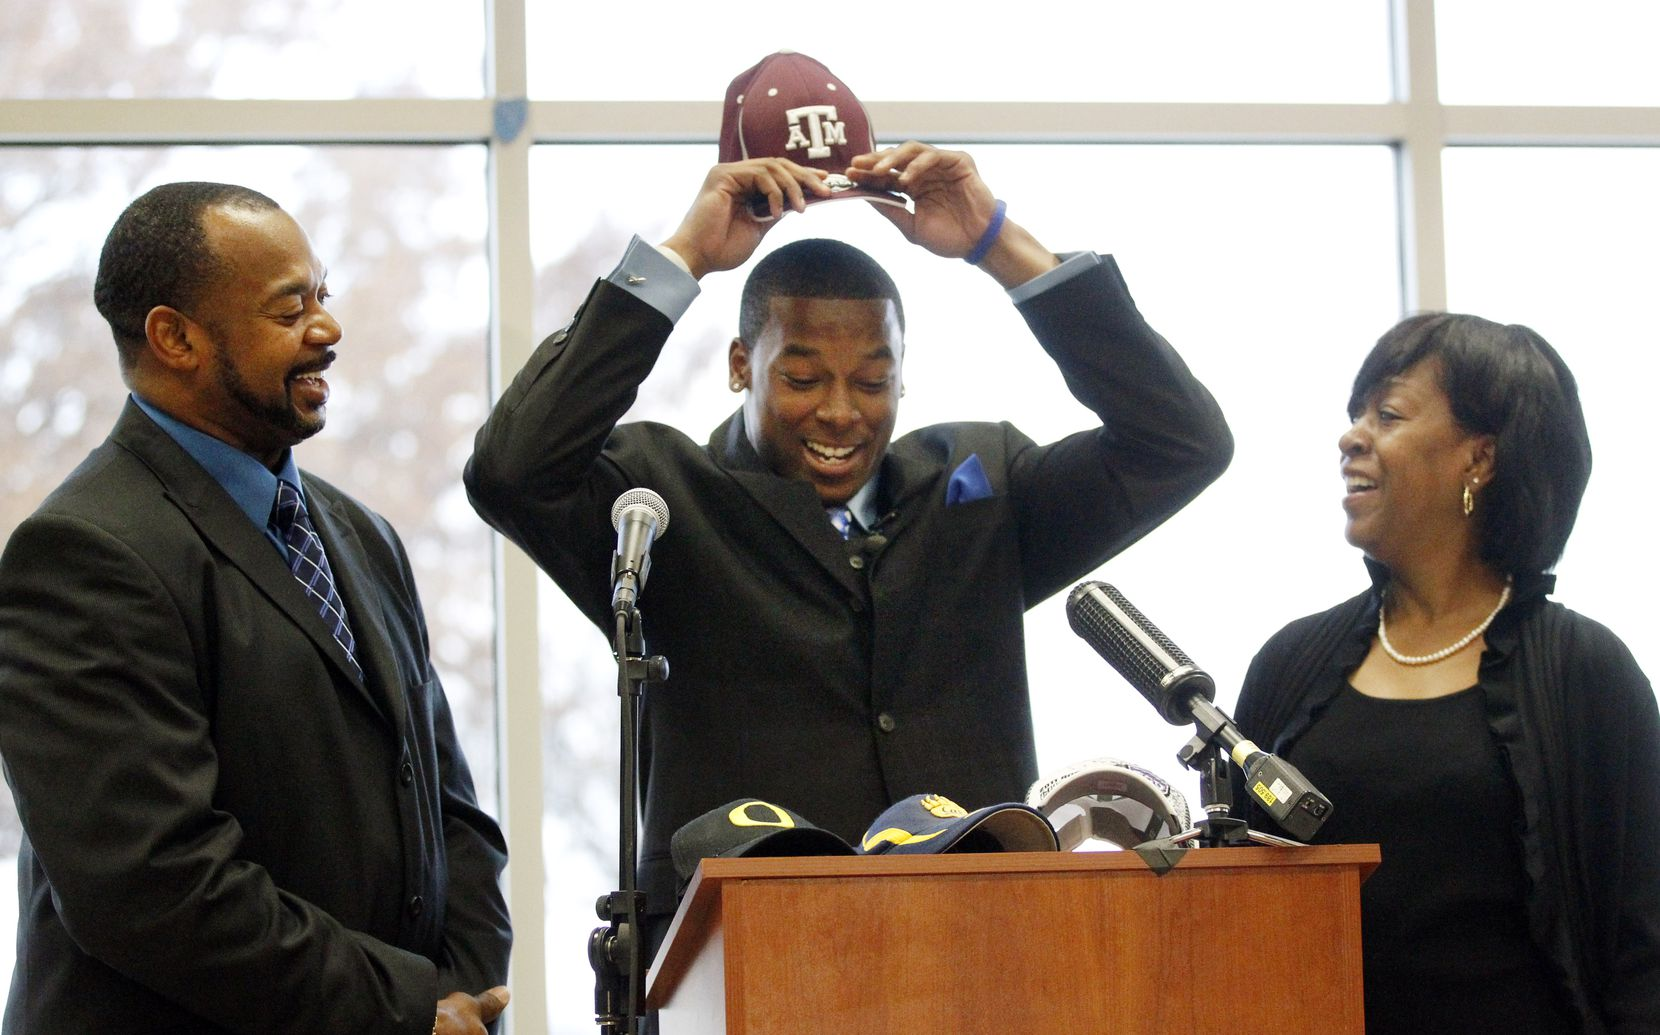 Skyline High wide receiver Thomas Johnson (center) puts on a Texas A&M cap, as father Robert and stepmother Sabrina watch, after committing to play football for the school, signing a National Letter of Intent at a ceremony held in the Skyline High School cafeteria on Wednesday, February 1, 2012. Johnson is the No. 2-ranked high school recruit in the area. (John F. Rhodes / Special Contributor)